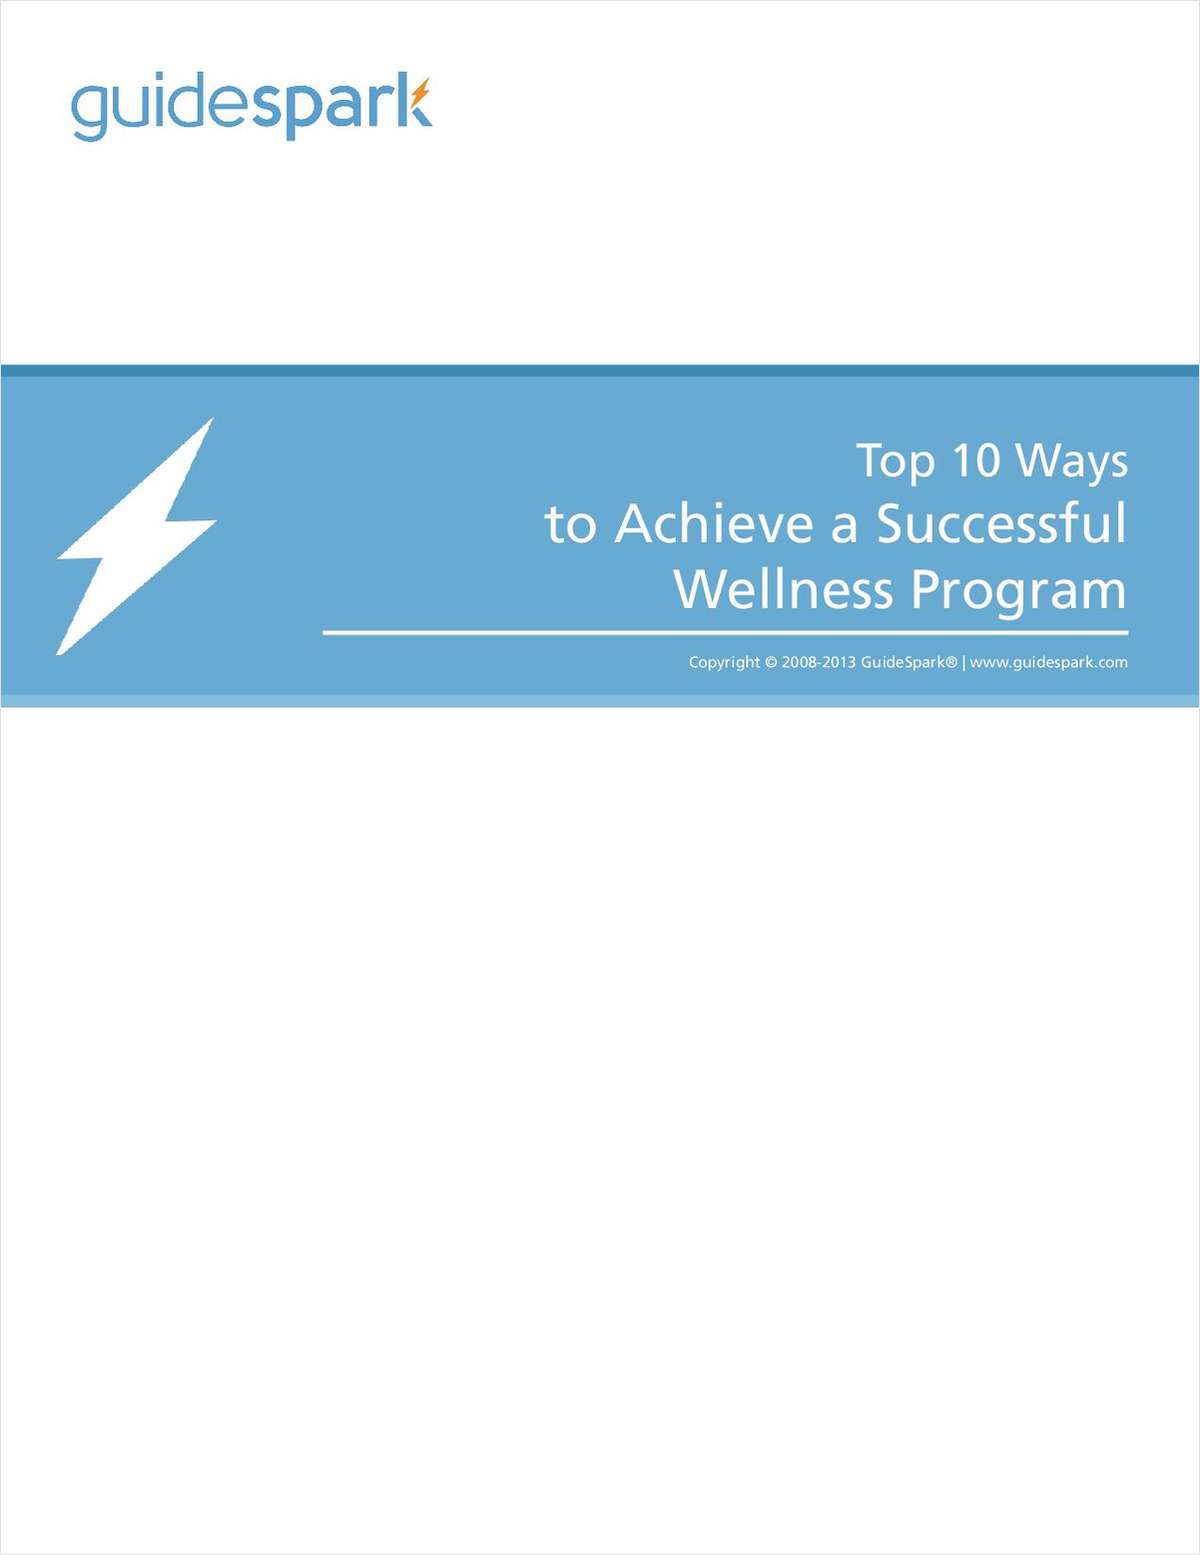 Top 10 Ways to Achieve a Successful Wellness Program